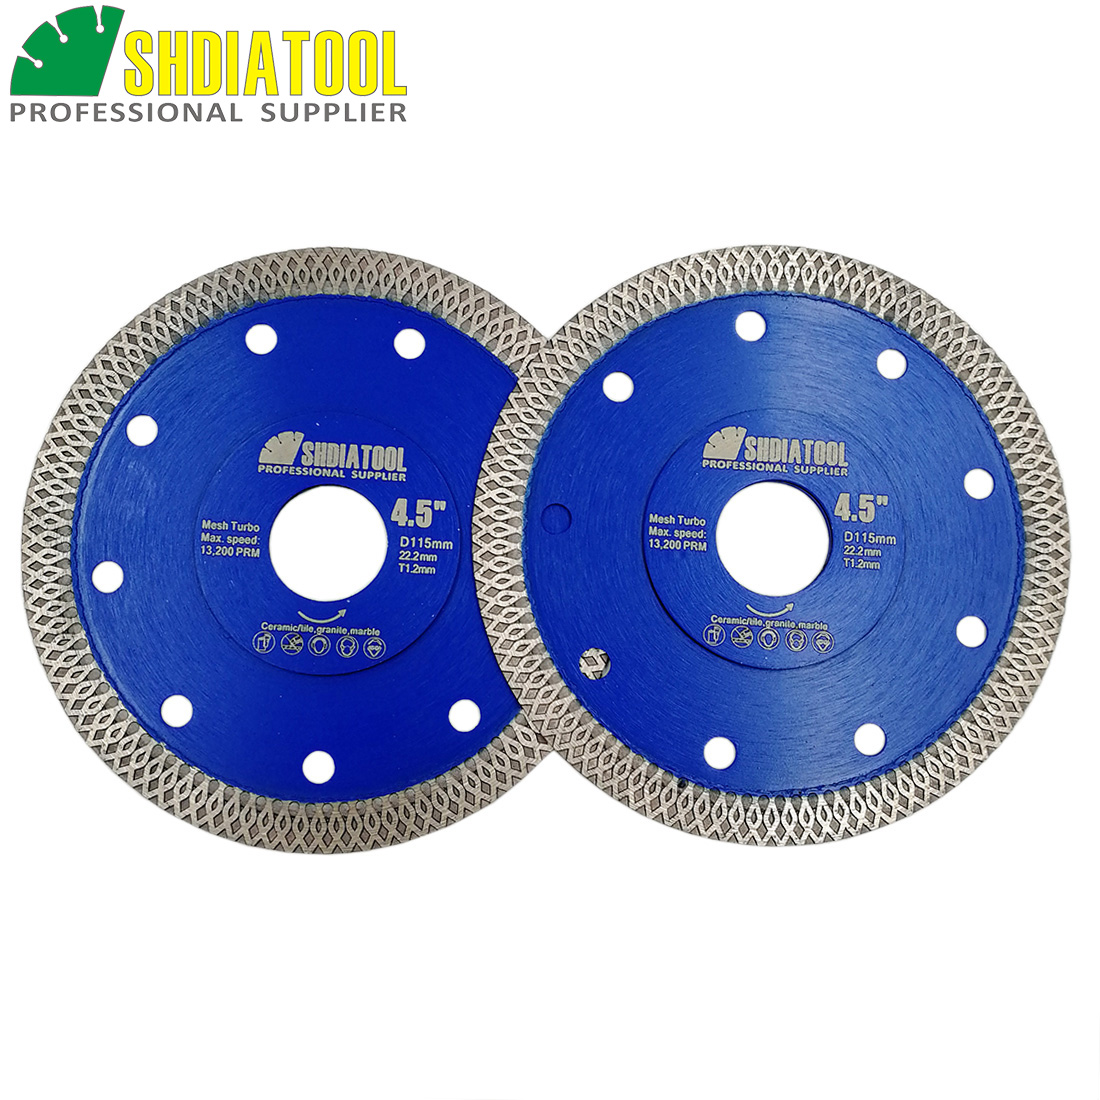 SHDIATOOL 2units Dia 4.5inch/115mm Hot pressed X Mesh Turbo Diamond Saw blade Diamond height 10MM Cutting Disc for Ceramic Tile